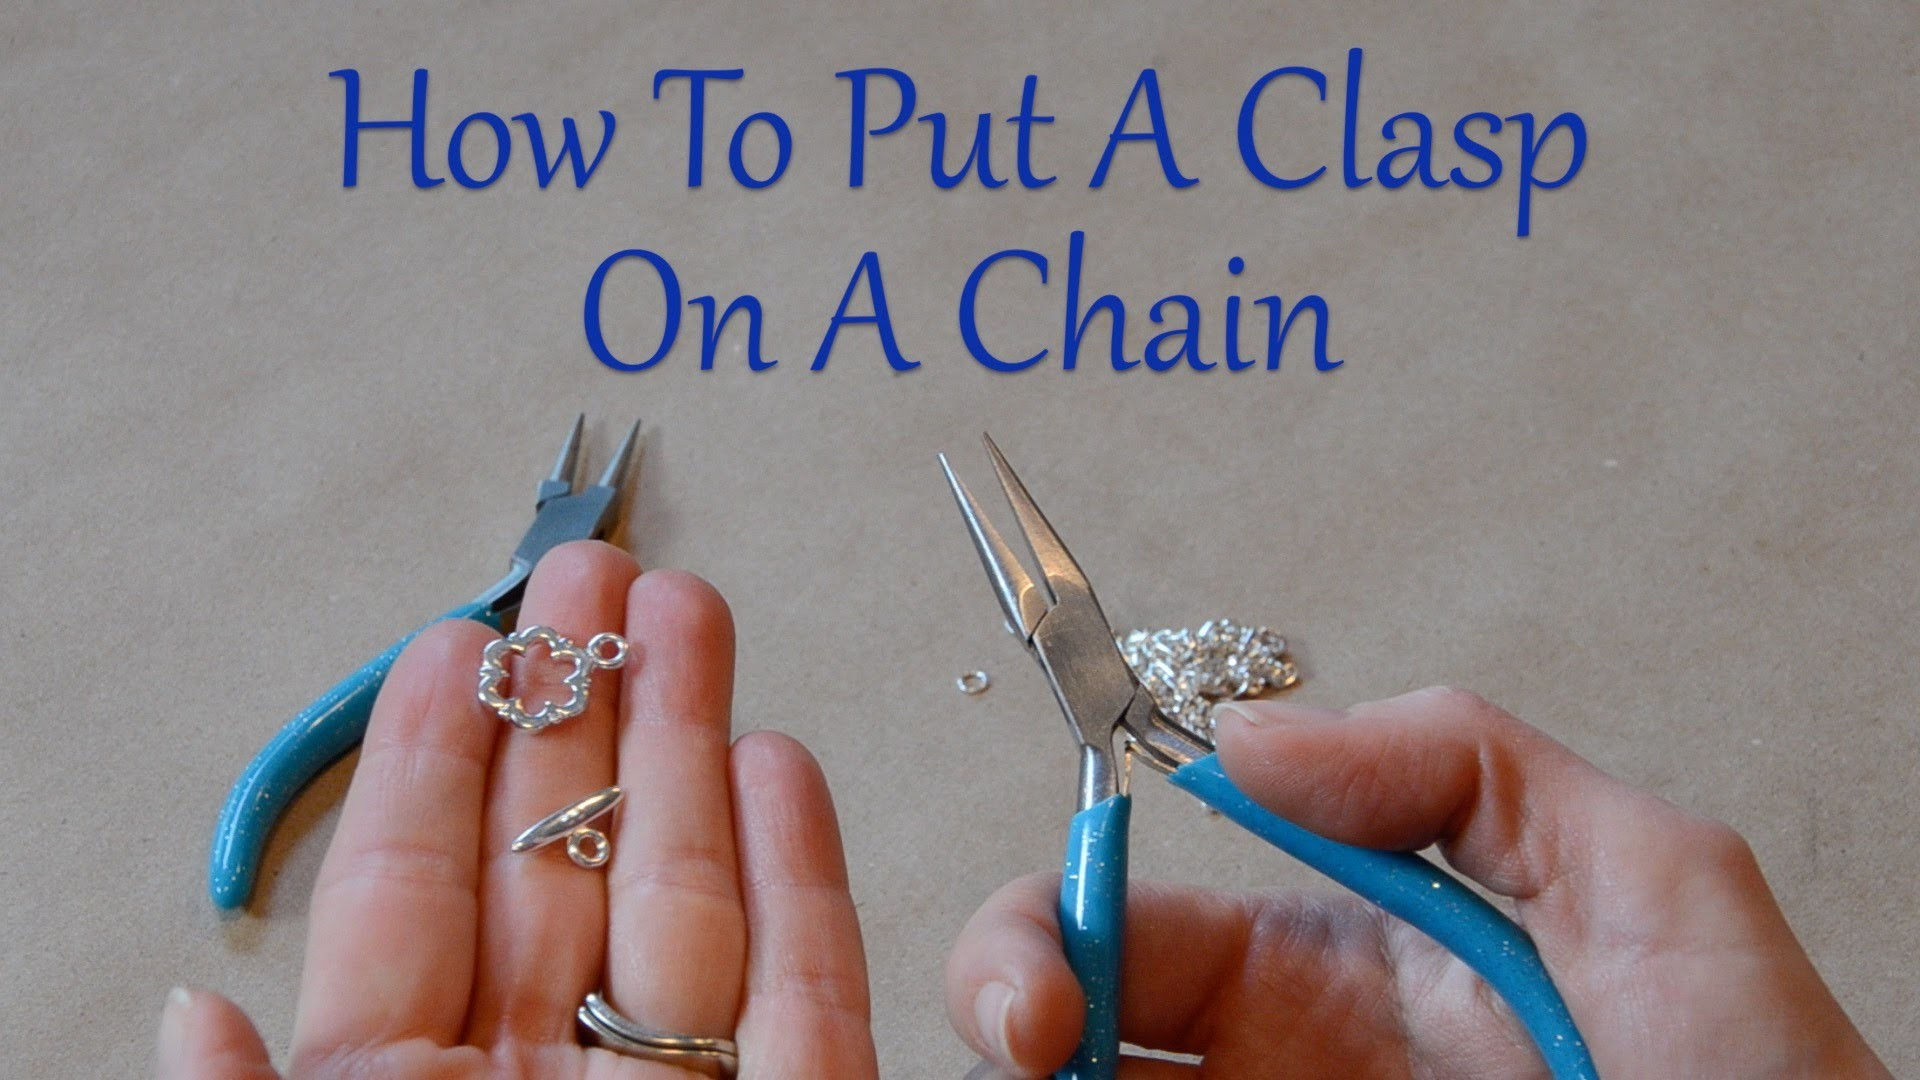 How To Make Jewelry: How To Put A Clasp On A Chain